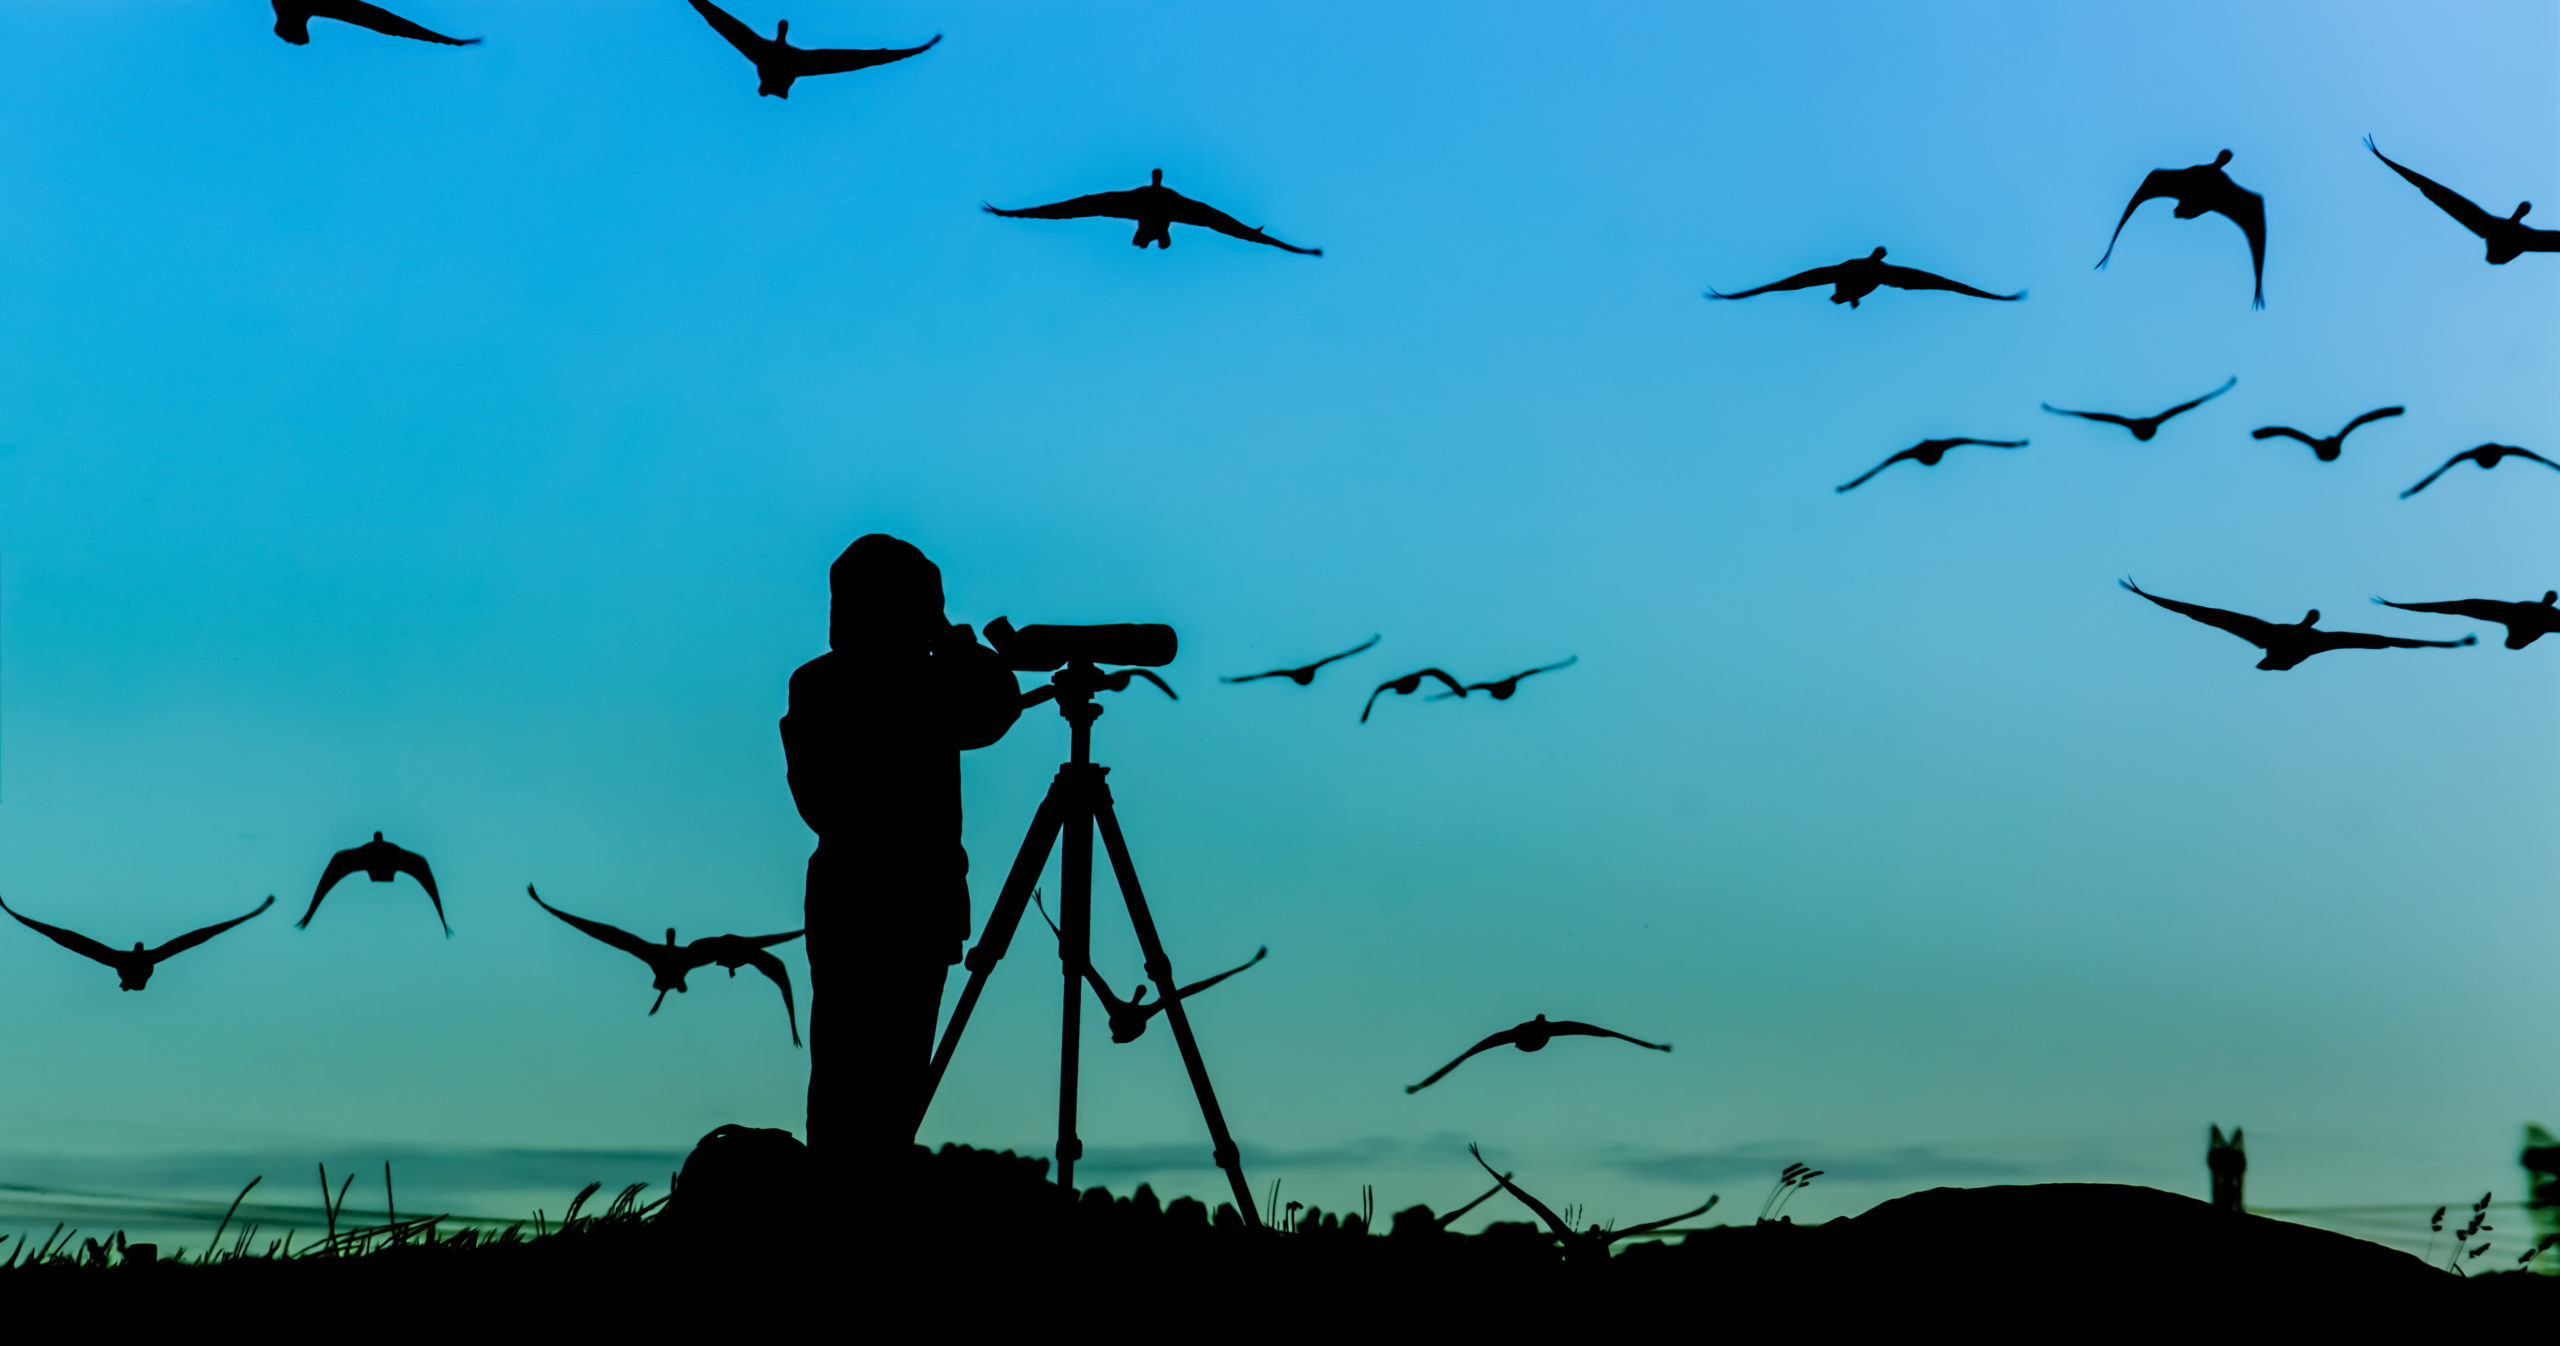 Silhouette of a person bird-watching at dusk | bird-watching near Hanover, MD